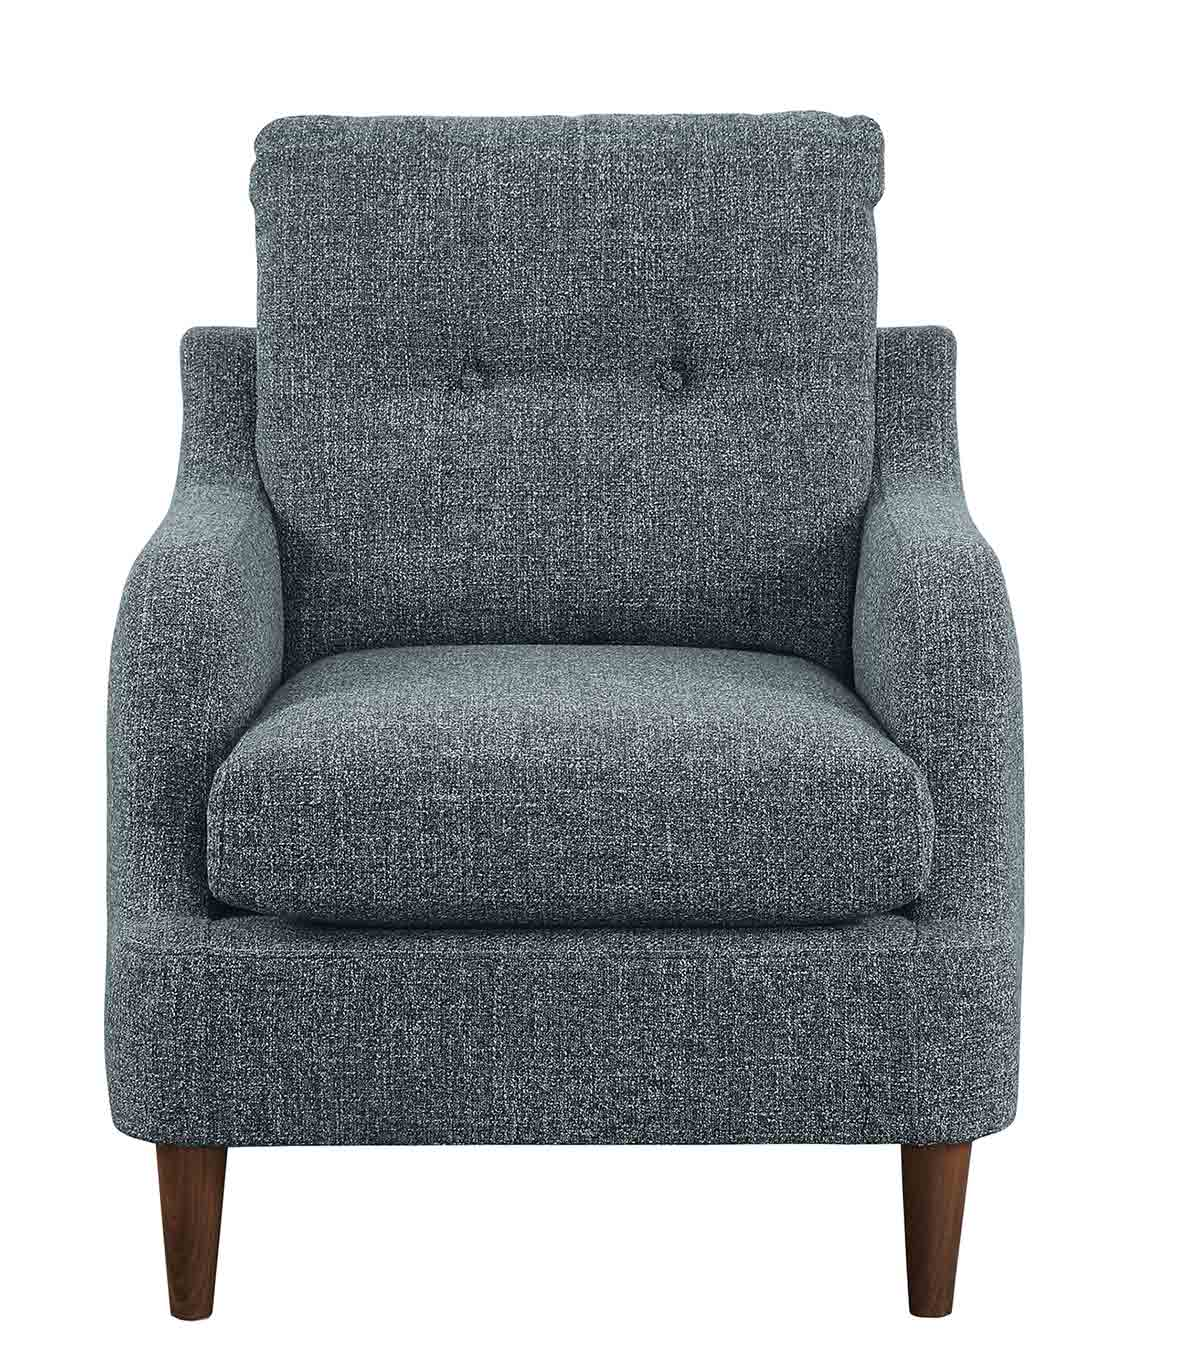 Homelegance Cagle Accent Chair - Gray